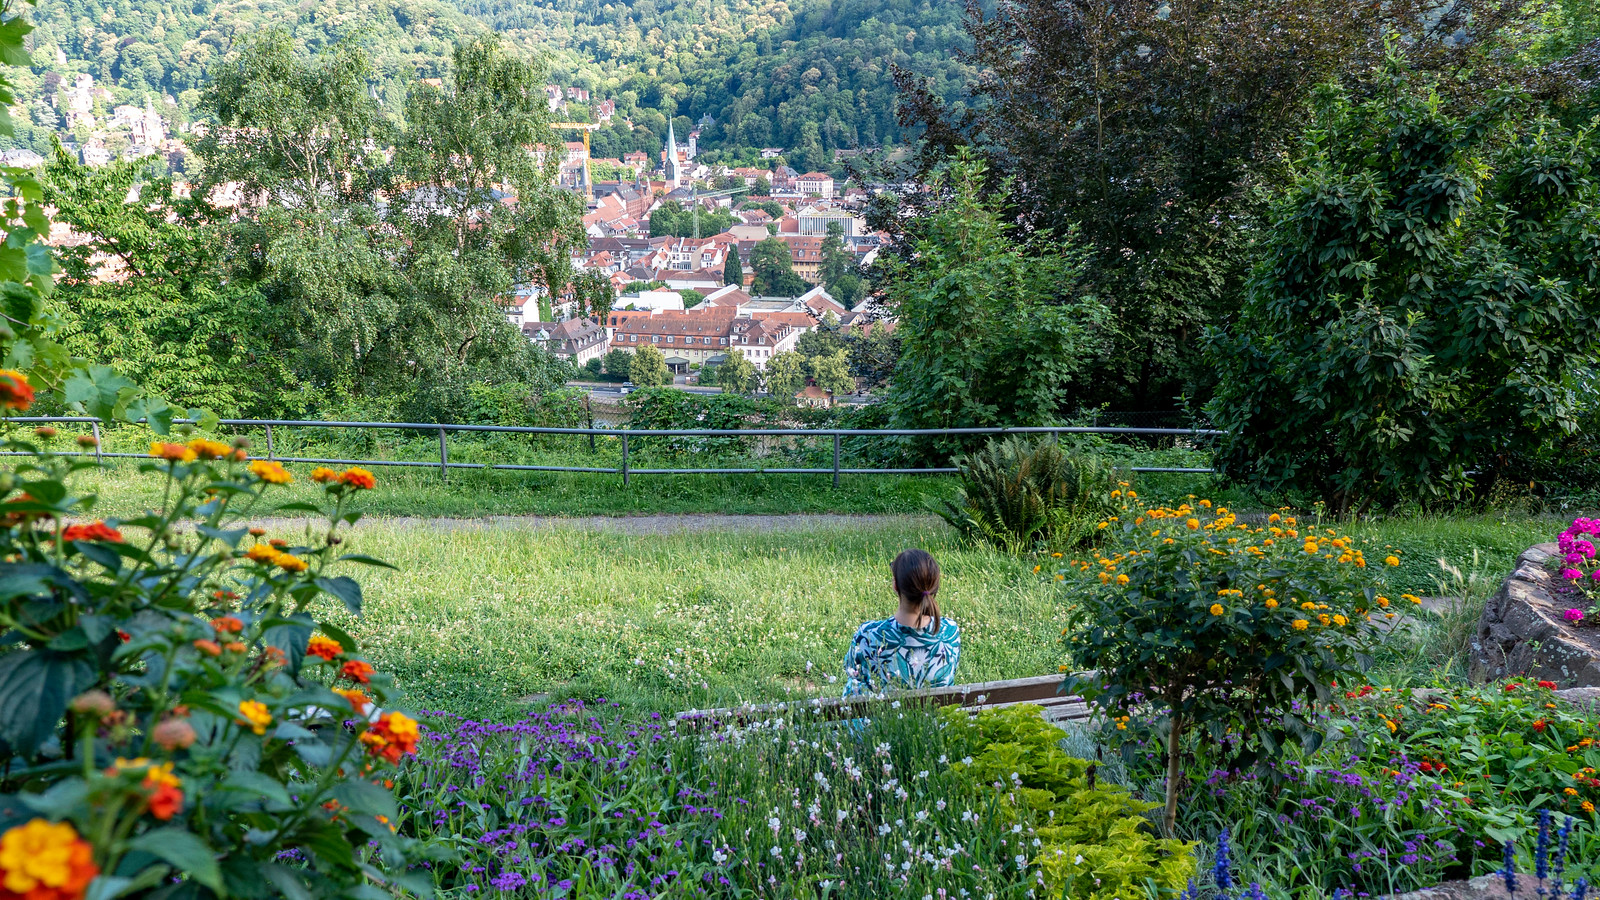 Spectacular Things to Do in Heidelberg Germany - The Philosopher's Walk (Philsophenweg)